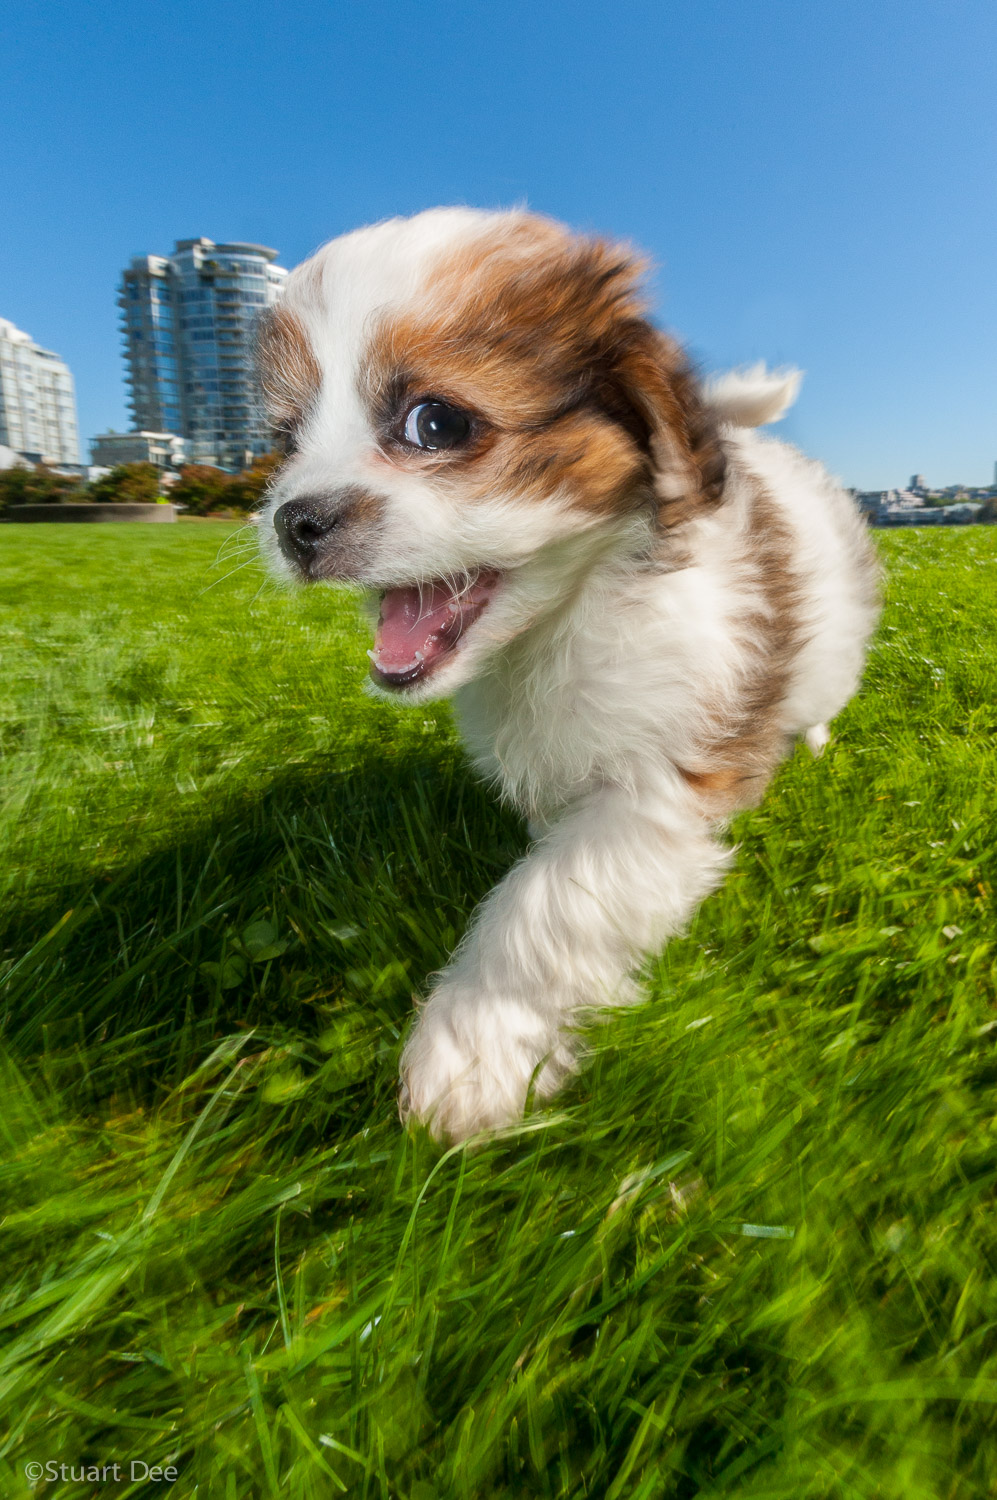 Cute puppy dog in park, Vancouver, BC, Canada. Shitzu - King Charles Cavalier mix breed